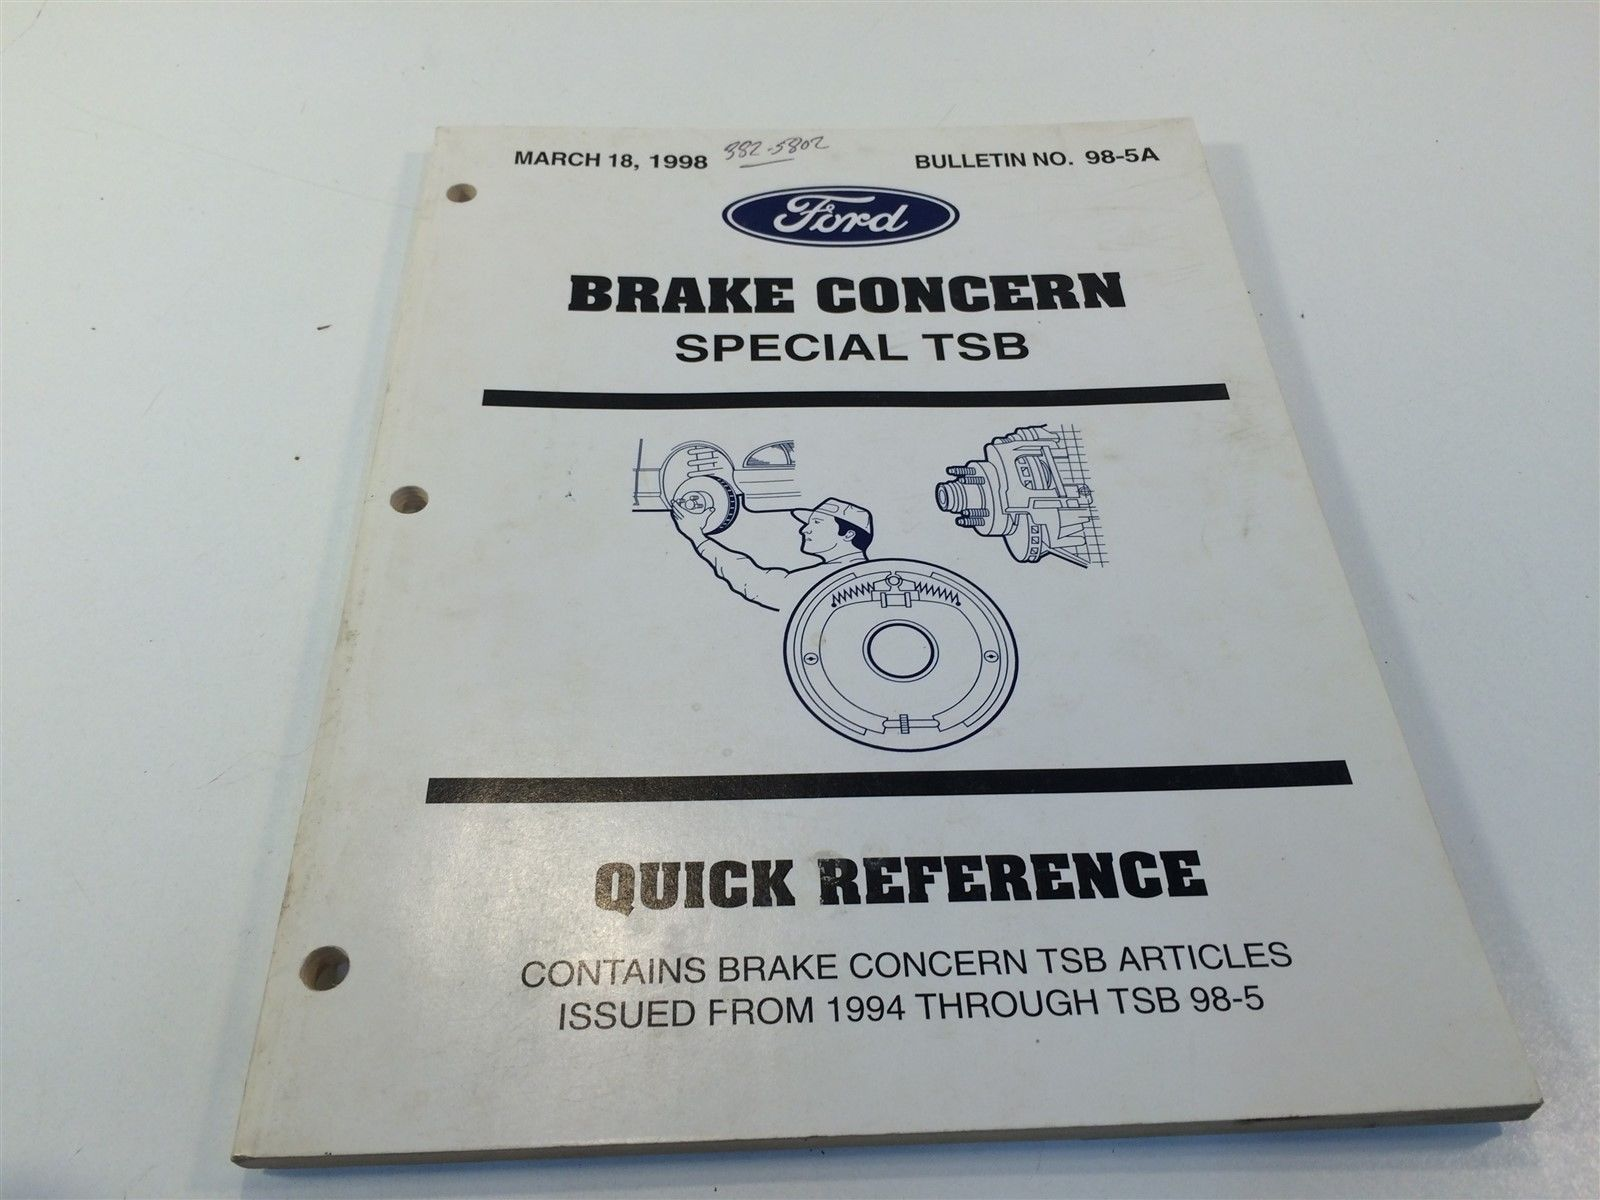 Primary image for Ford Brake Concern Quick Reference Special TSB: March 18, 1998 98*5A